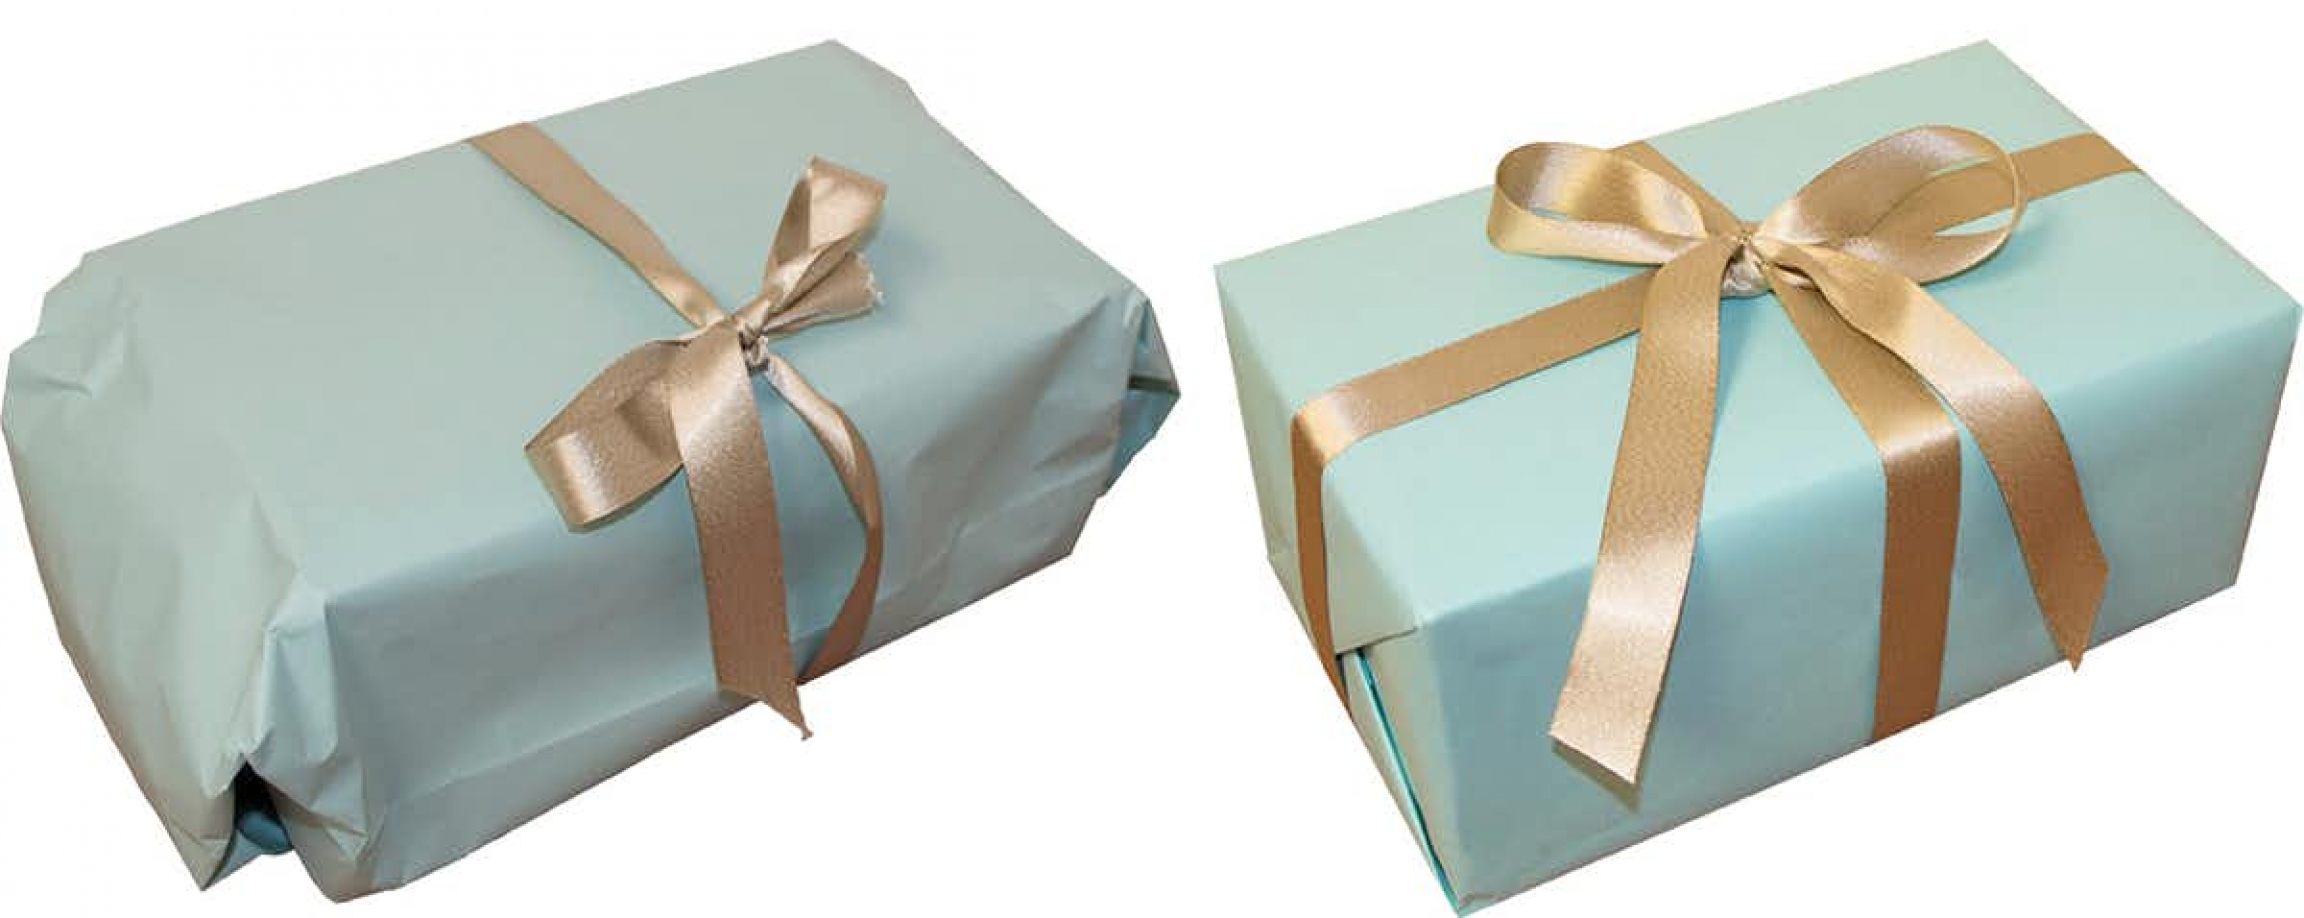 Gift wrapping - sloppy vs. neat